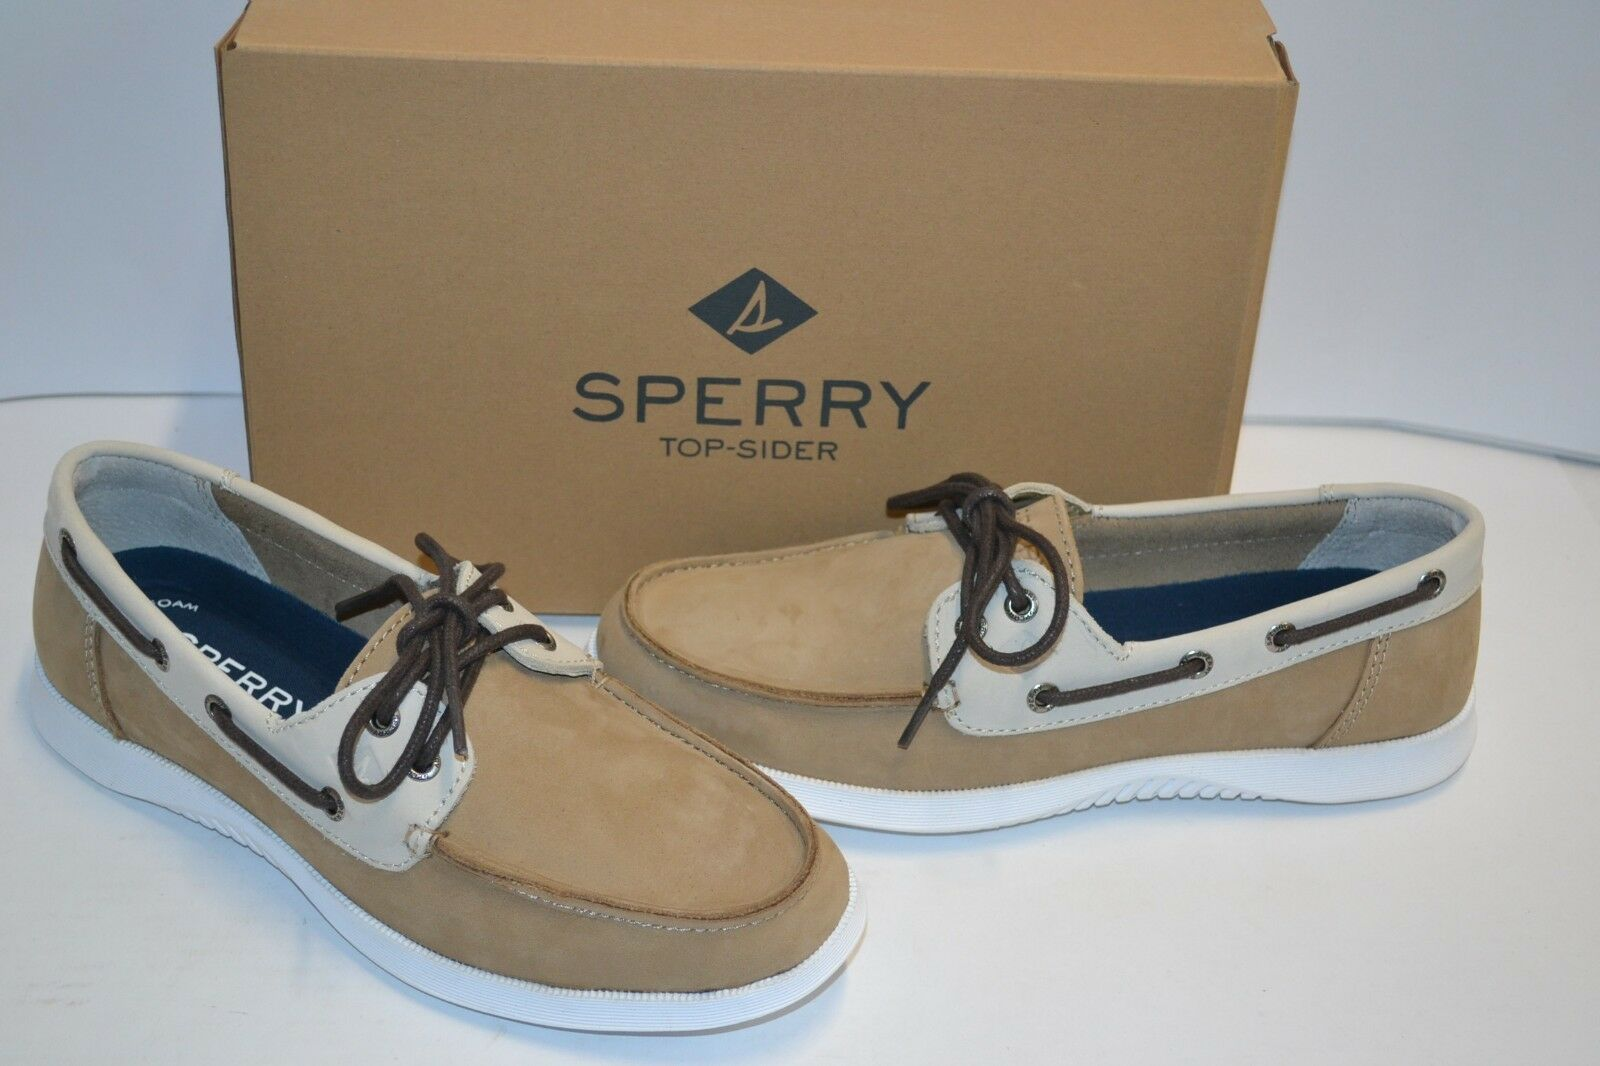 Sperry Men's Defender 2-Eye Taupe LEATHER Boat shoes Moccasins MEMORY FOAM 7.5 M